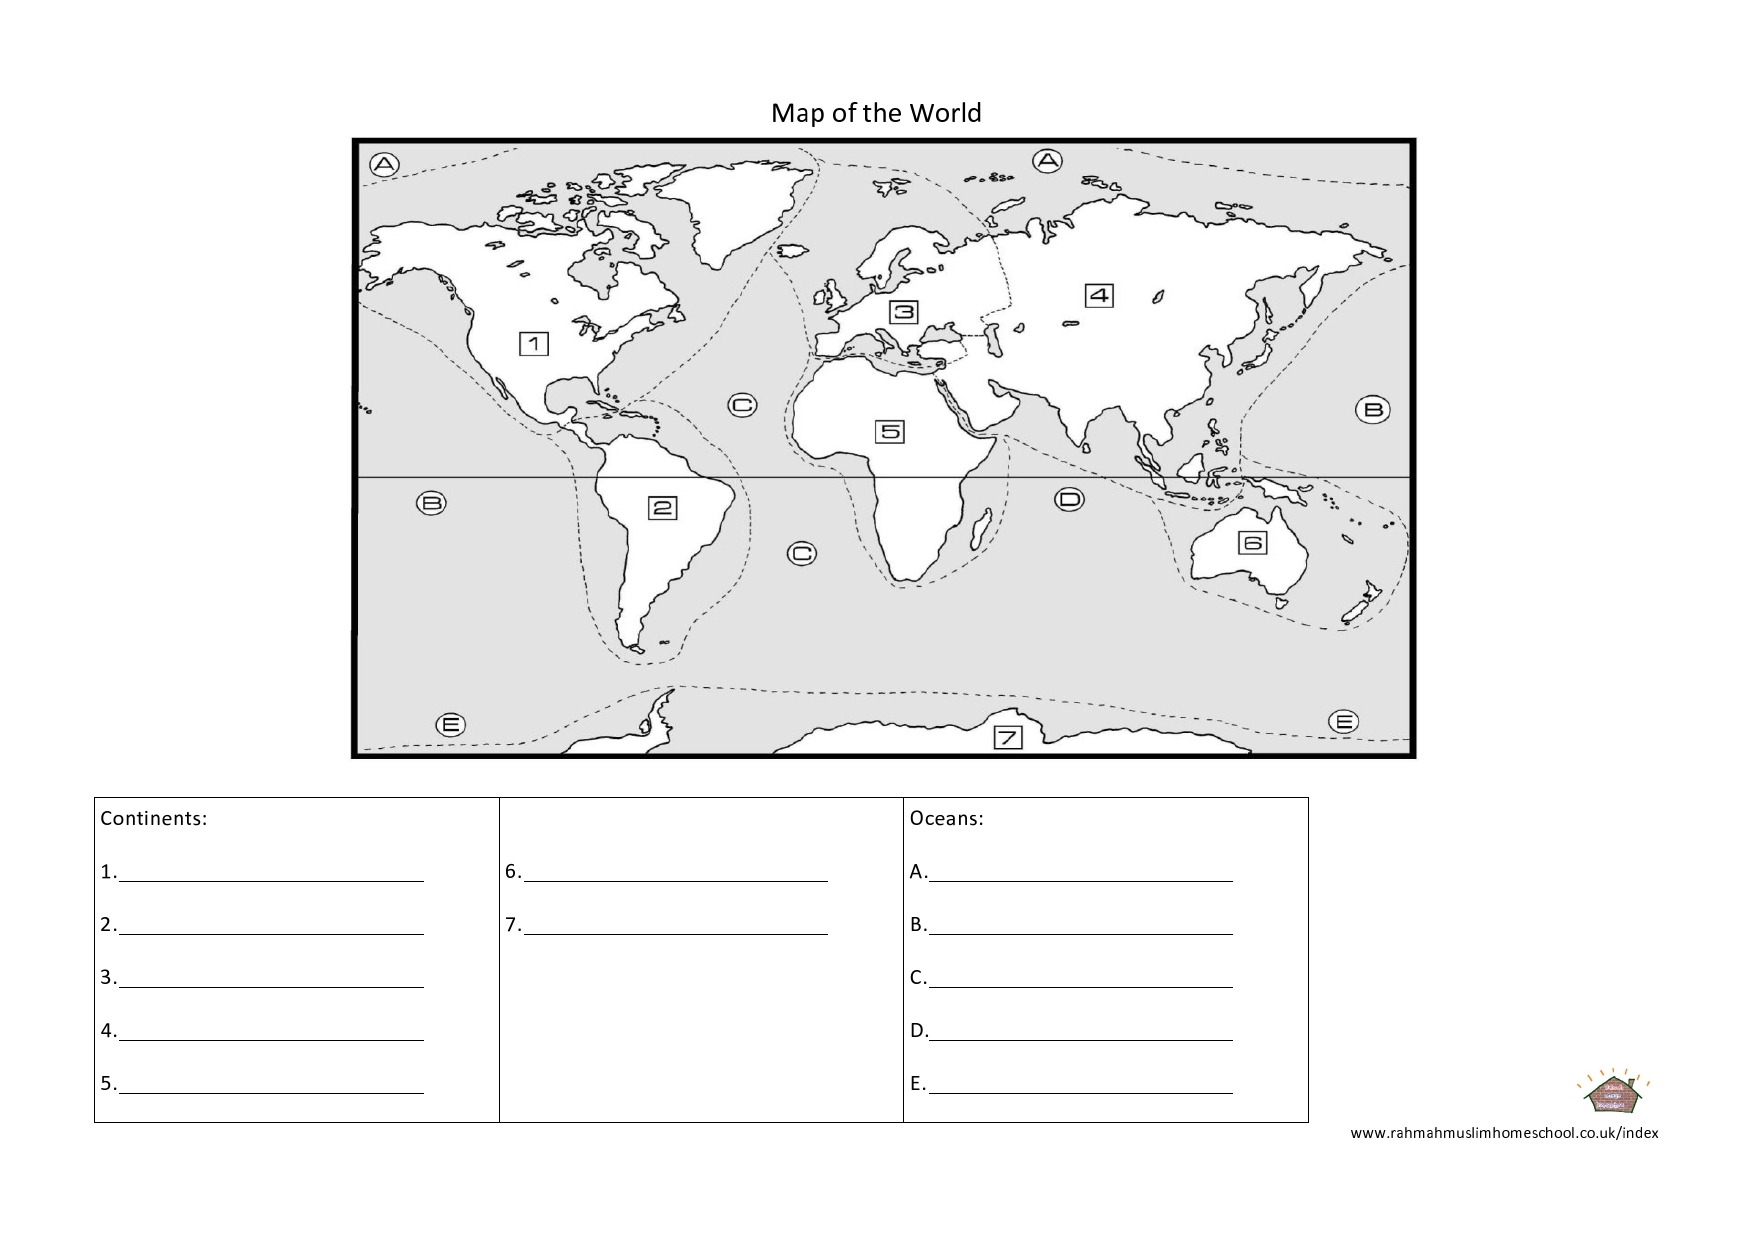 Maps And Continents Worksheet